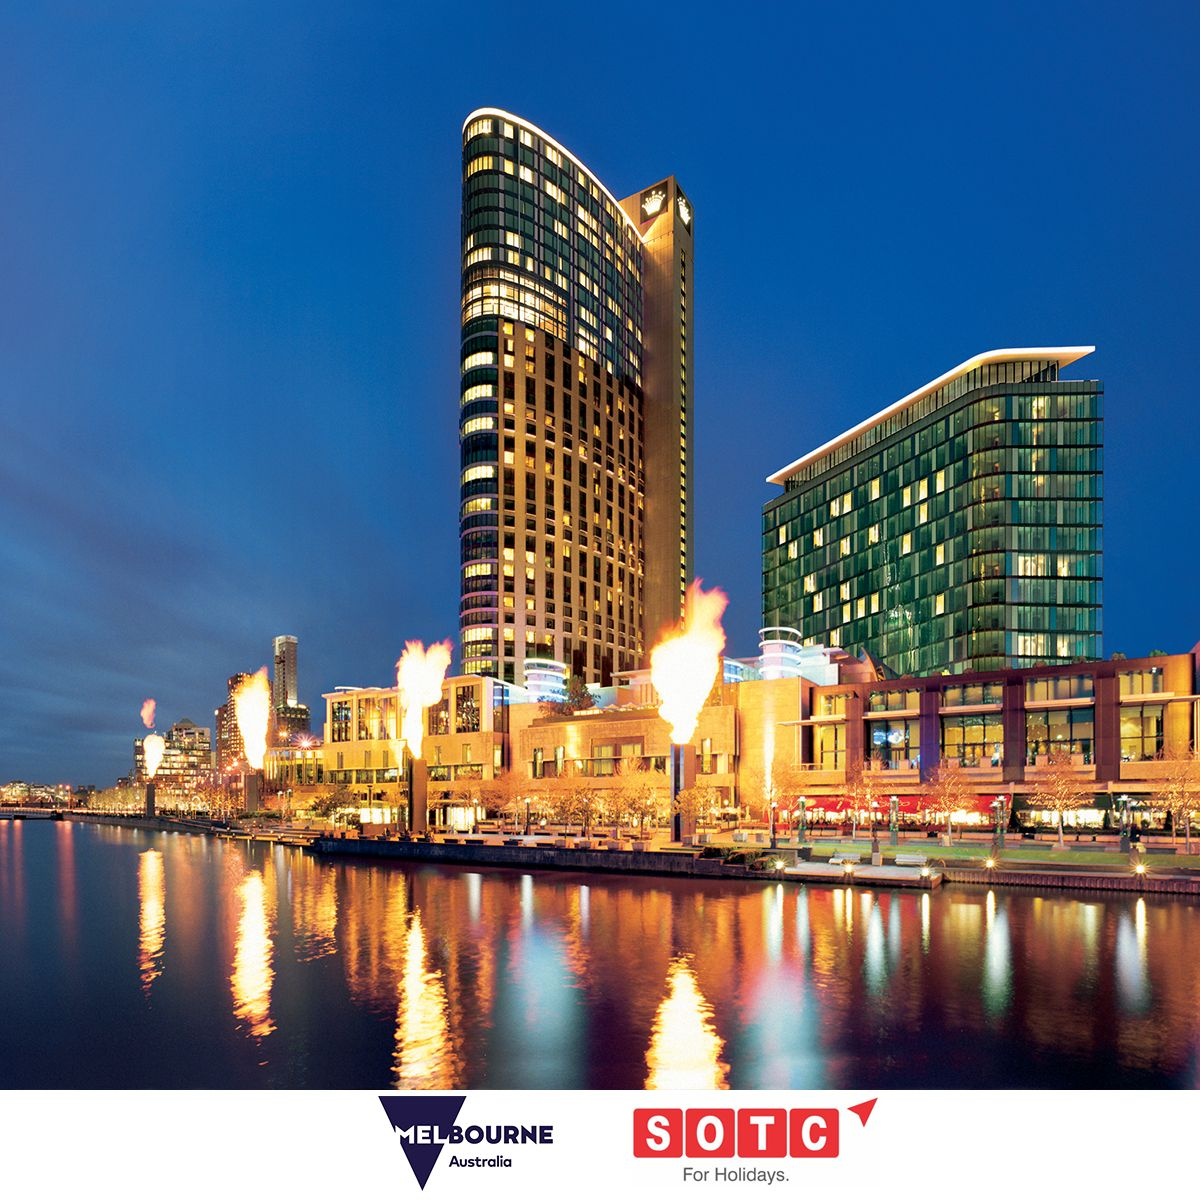 Stylish and arty, Melbourne is both dynamic and